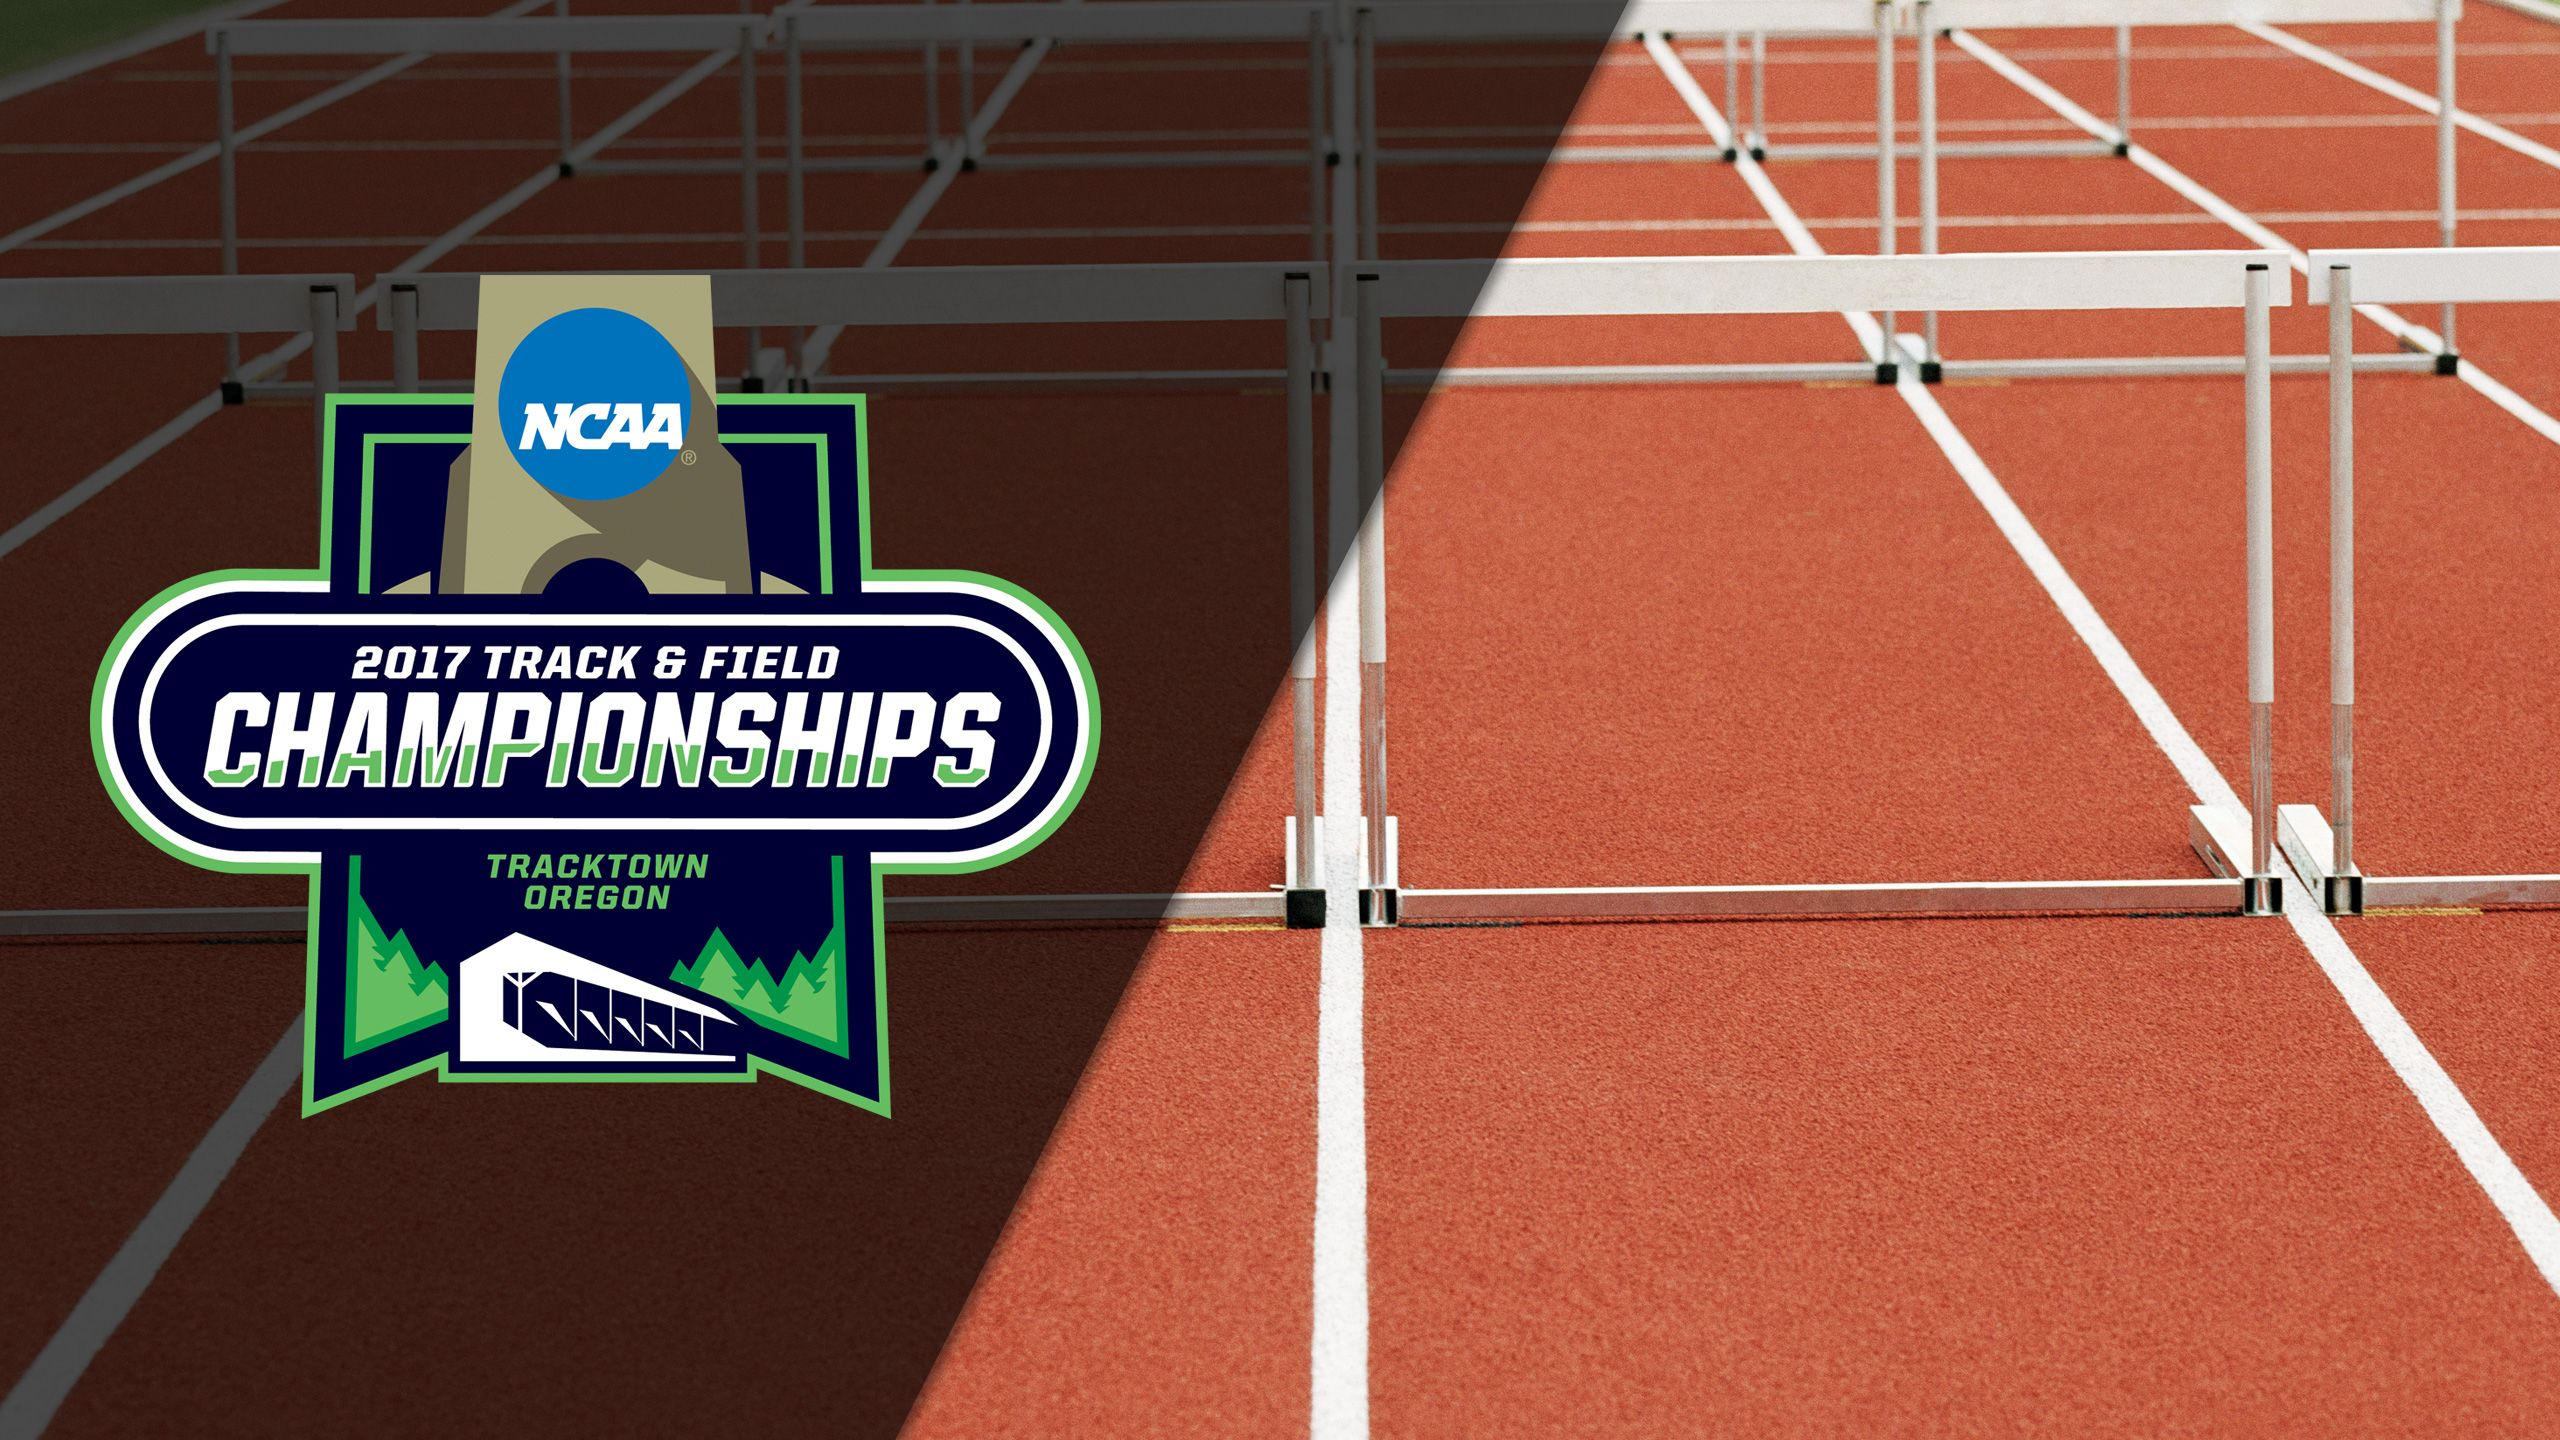 2017 NCAA Men's & Women's Track & Field Outdoor Championships Presented by Northwestern Mutual (Men's Semifinals)